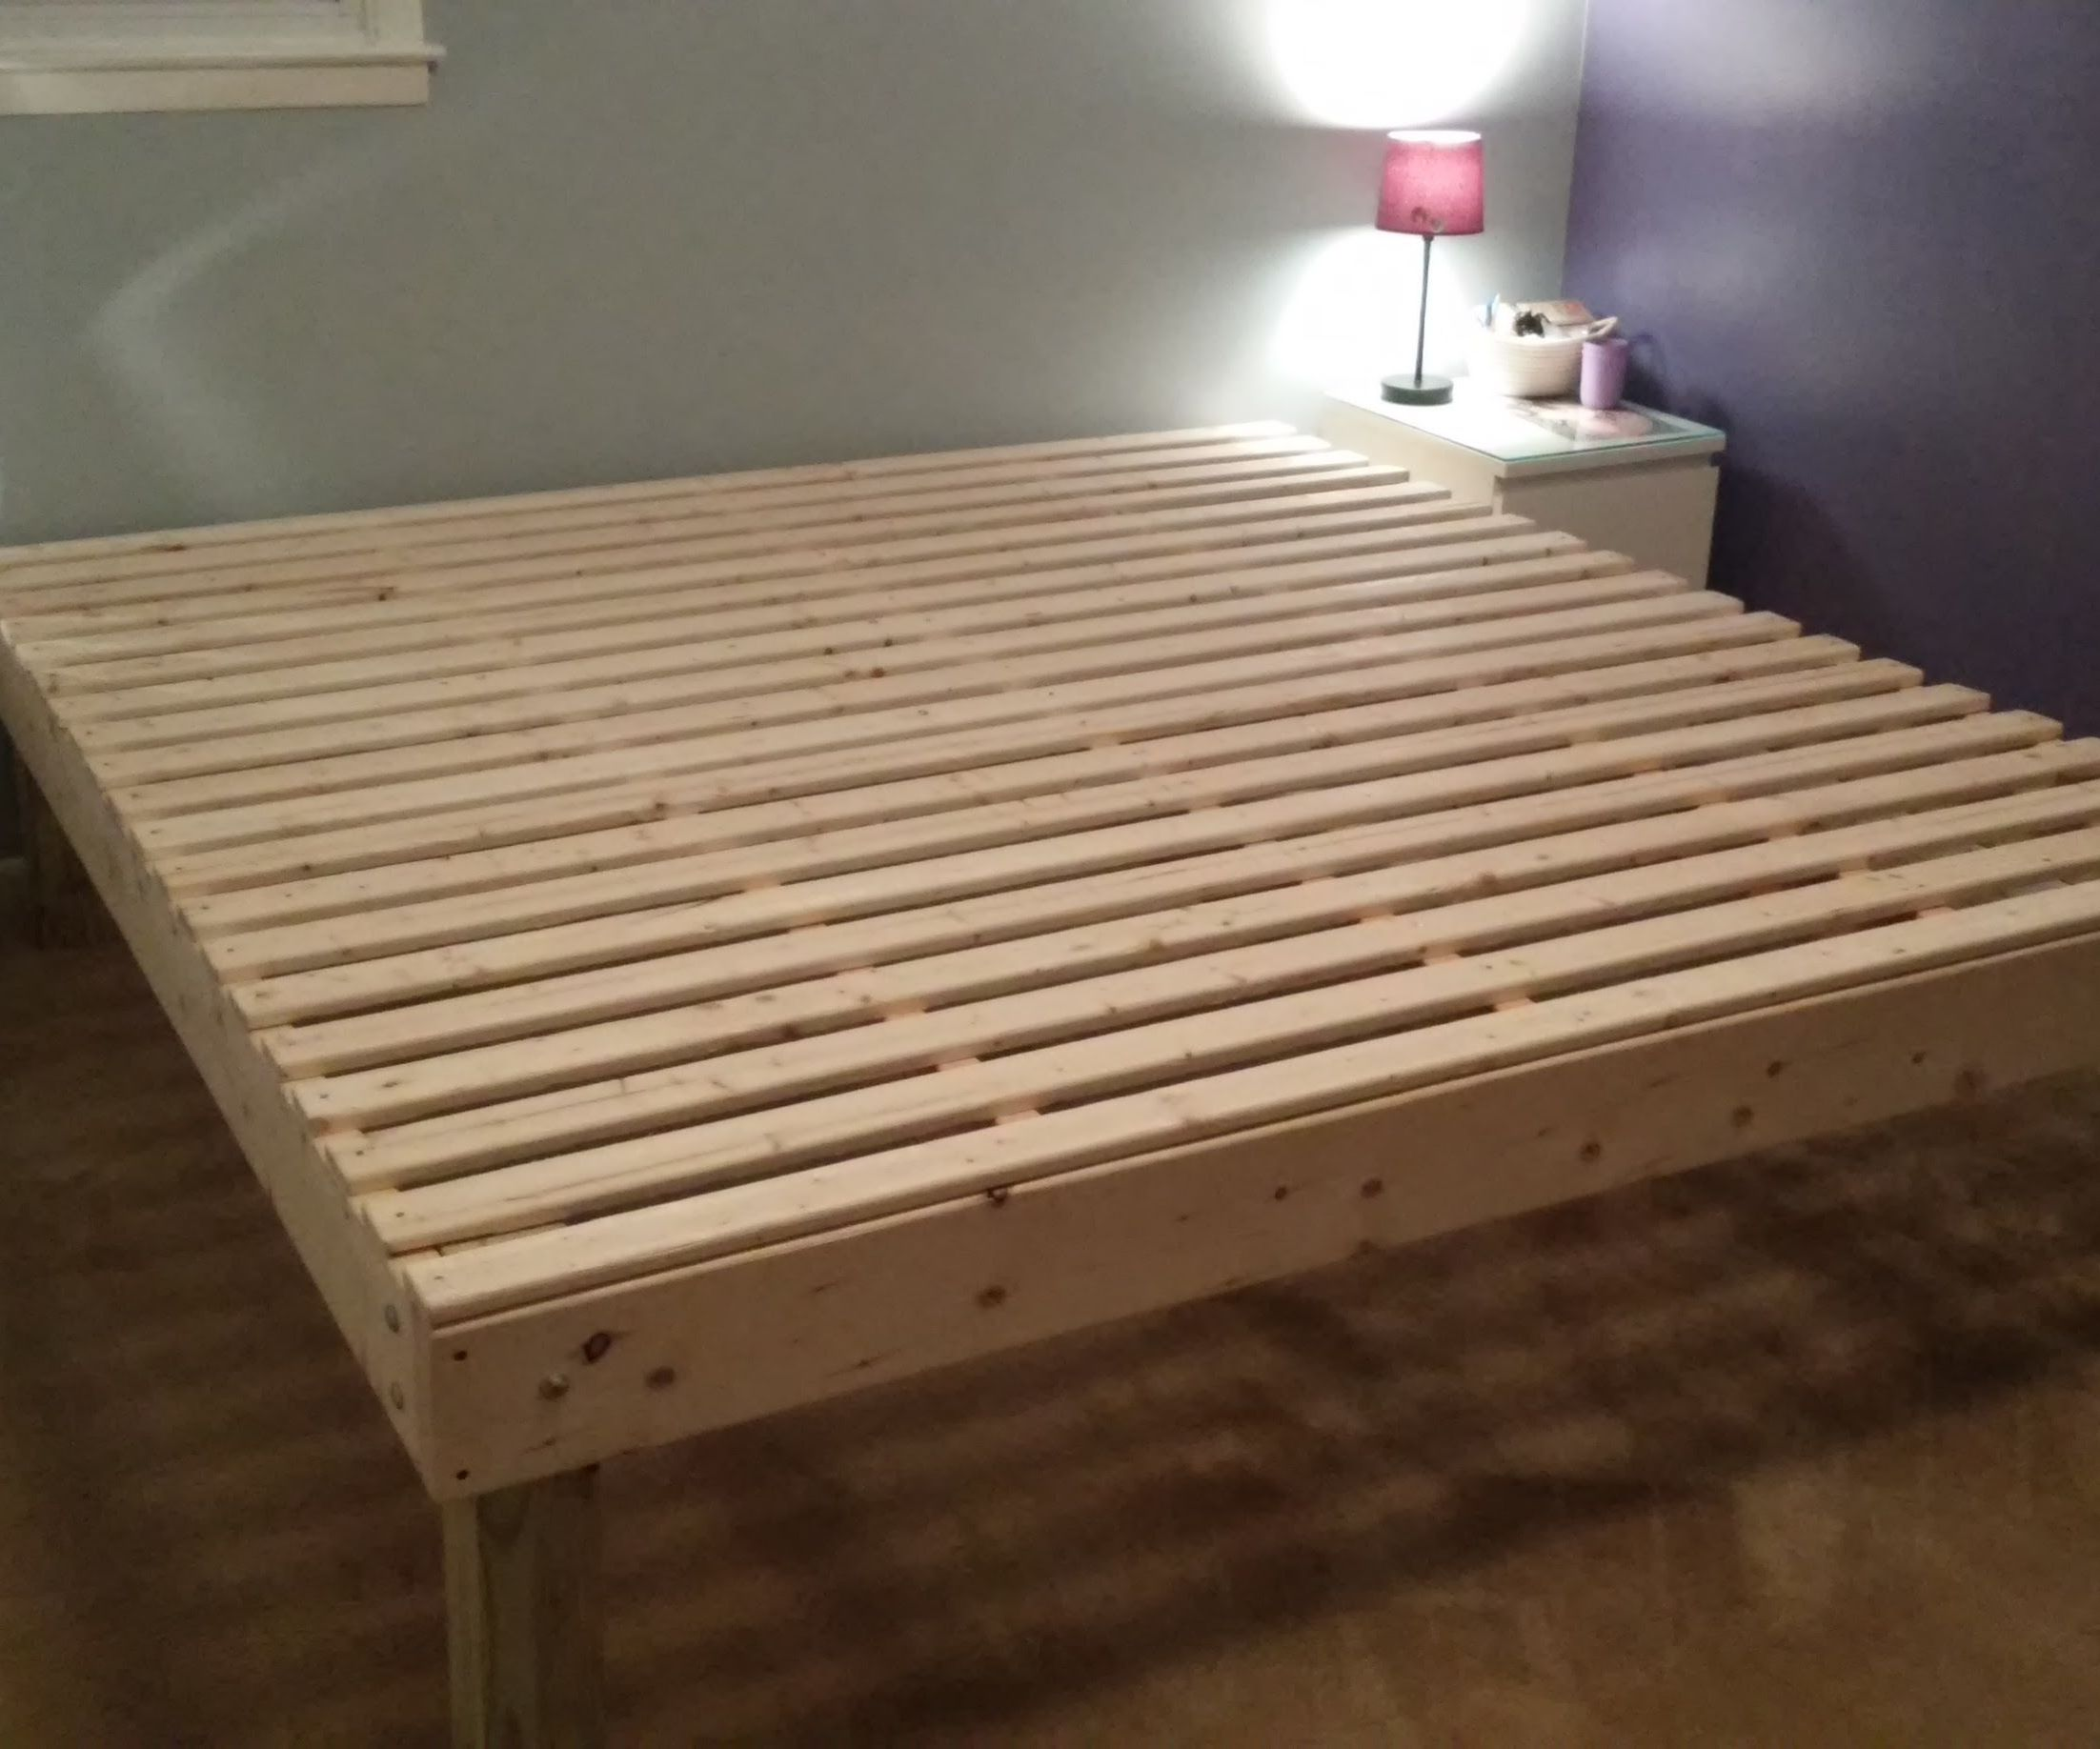 Foam Mattress Bed Frame For Under 100 9 Steps With Pictures Instructables